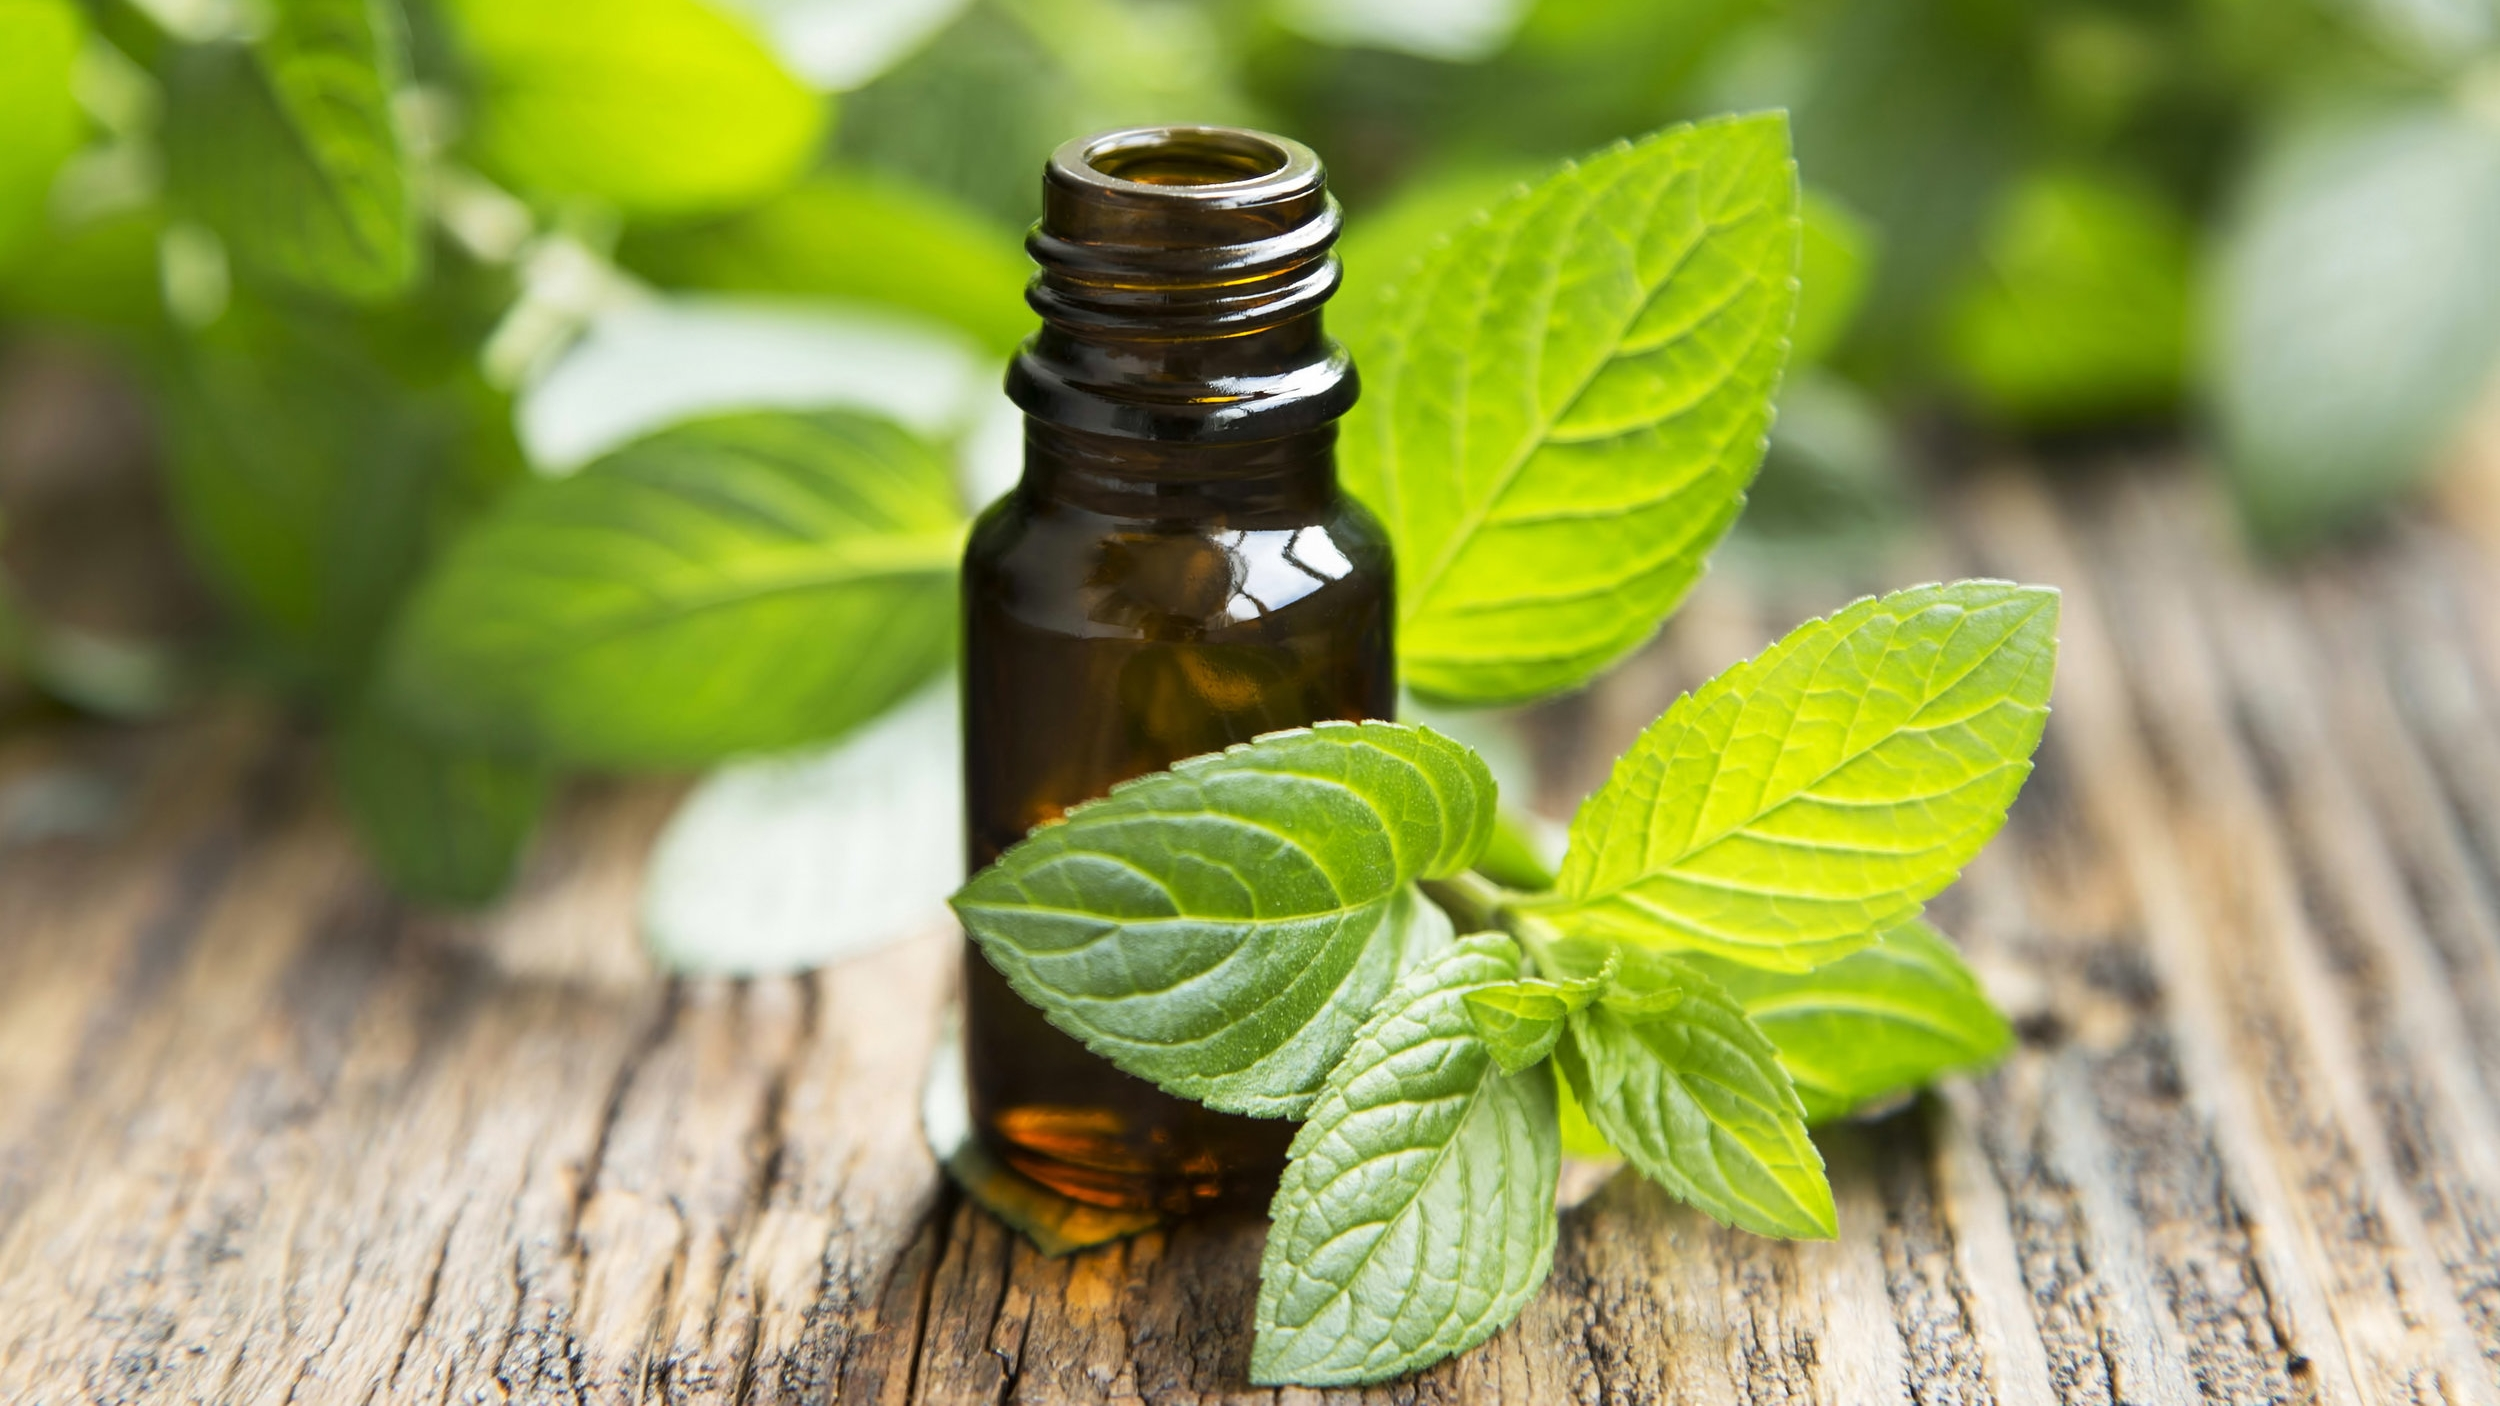 Peppermint Oil - Antimicrobial, freshens breath, opens the respiratory tract and has a calming effect.